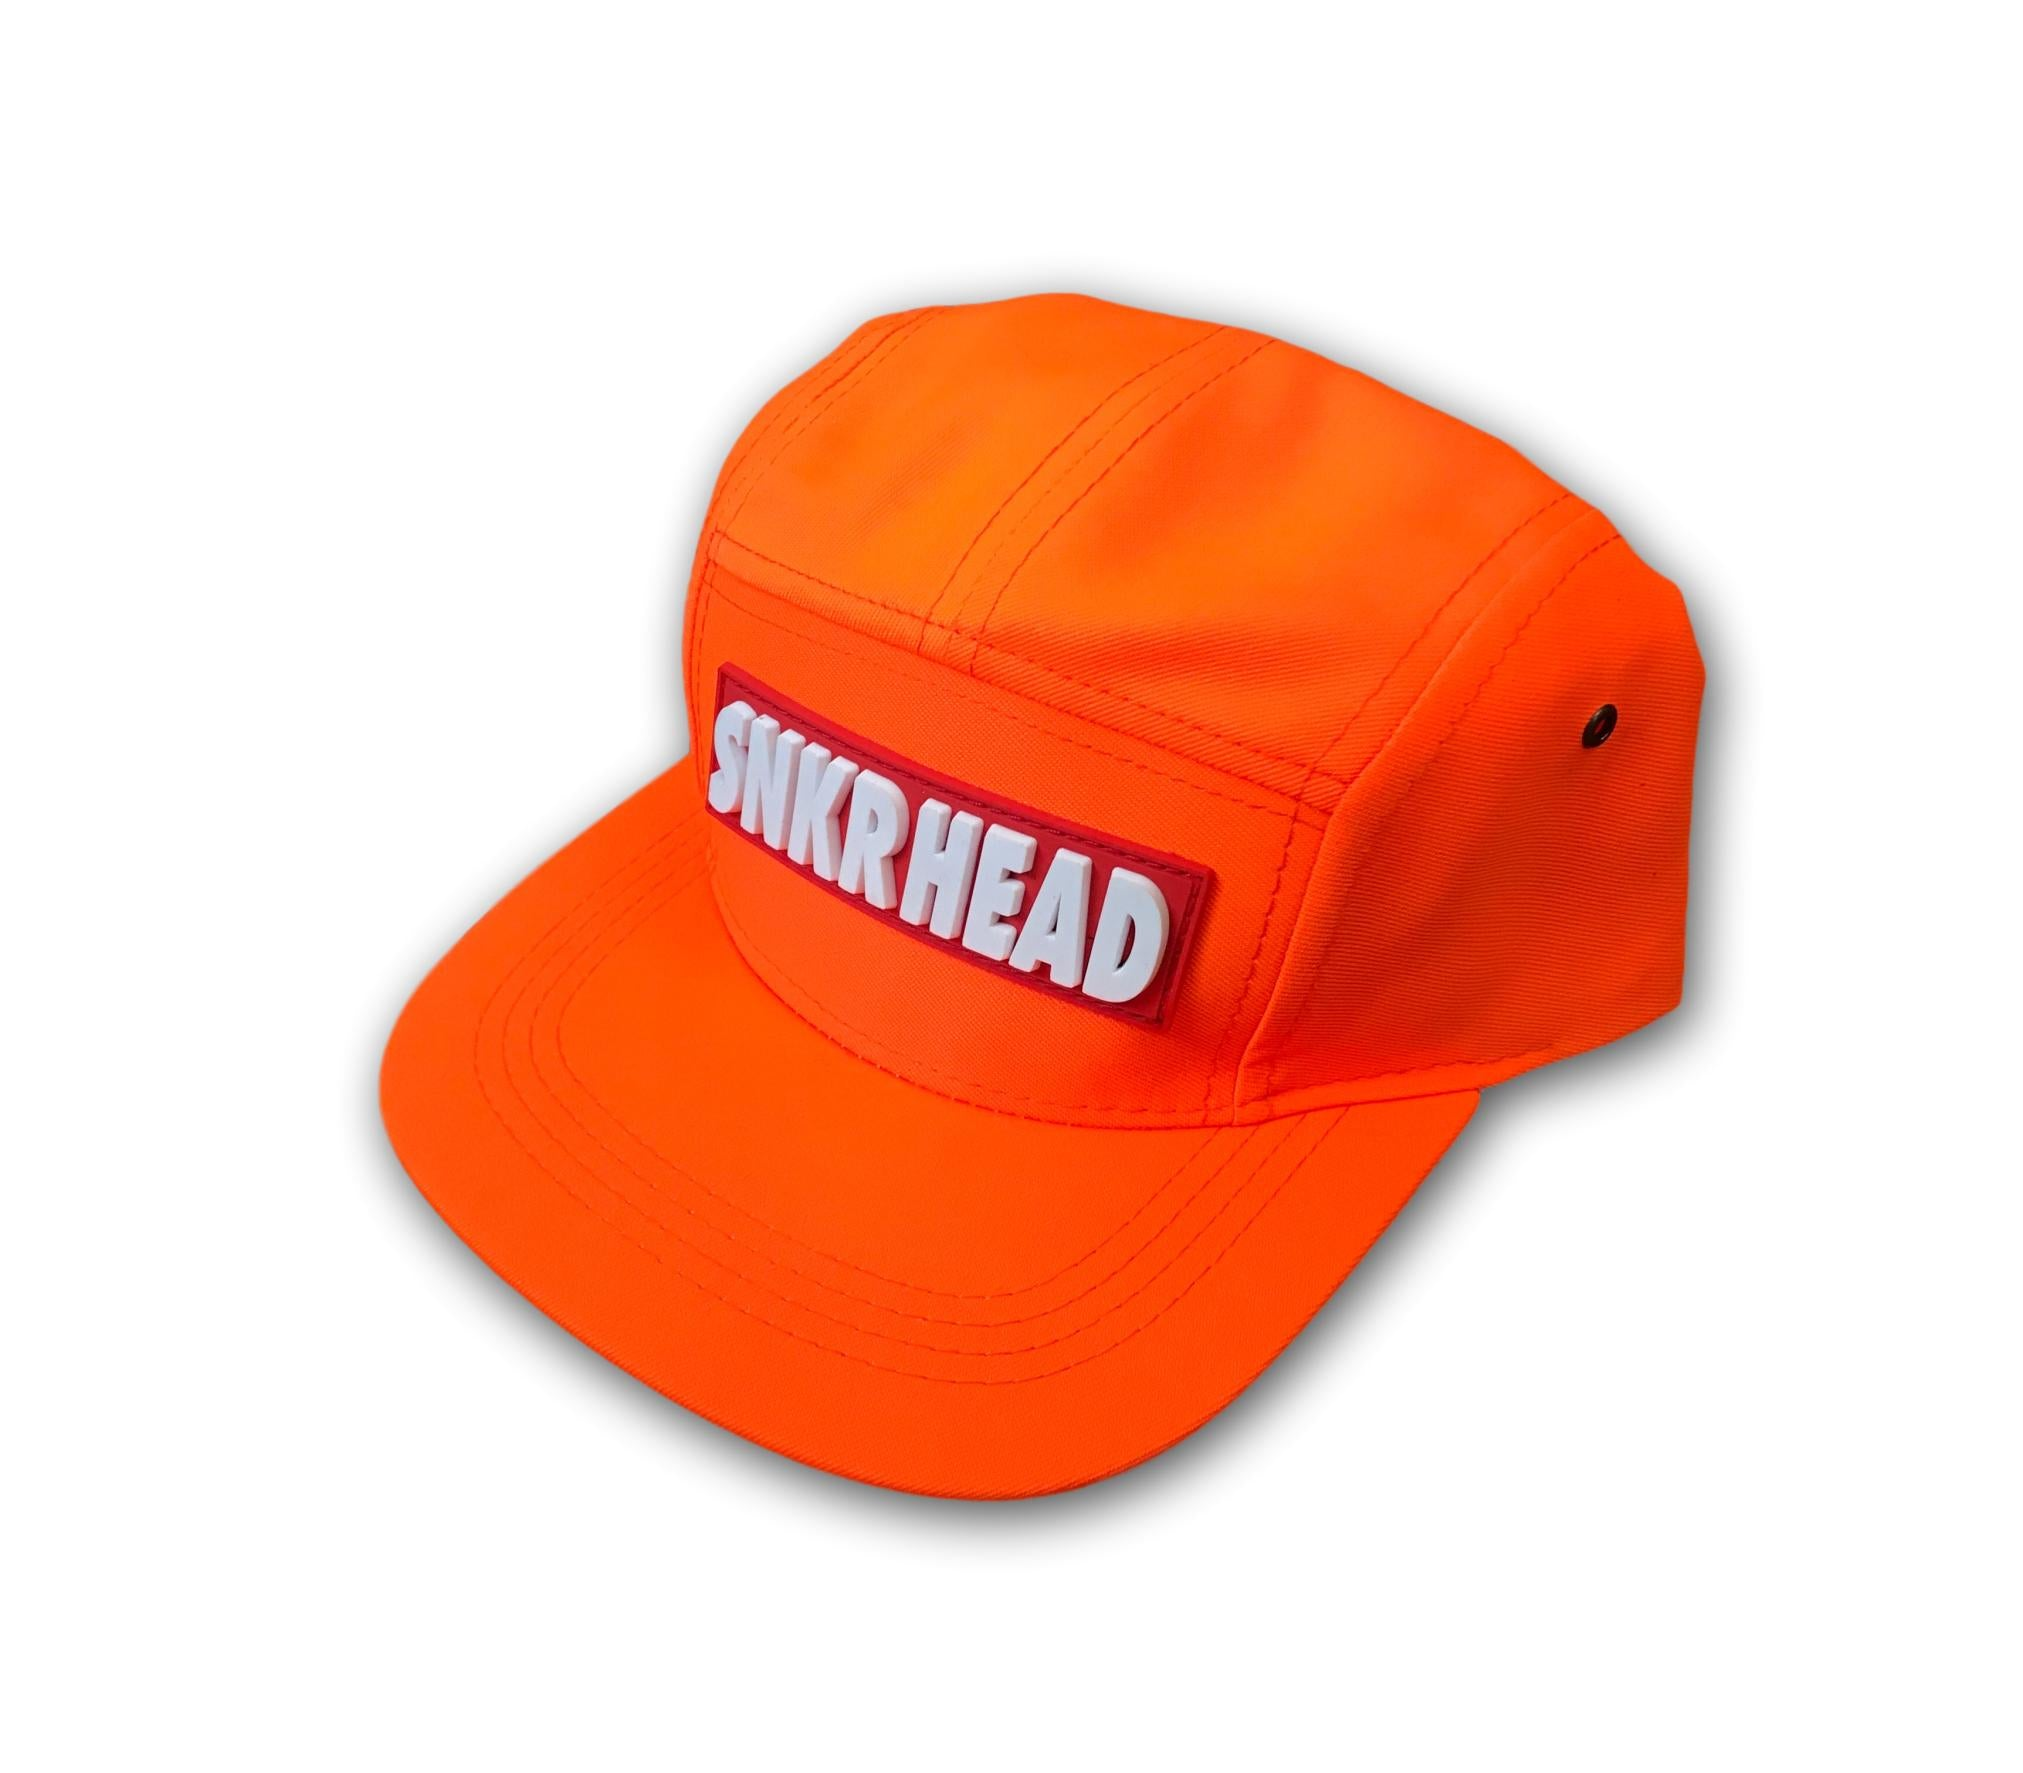 SNKR HEAD 5panel Strapback Hat (orange/red)